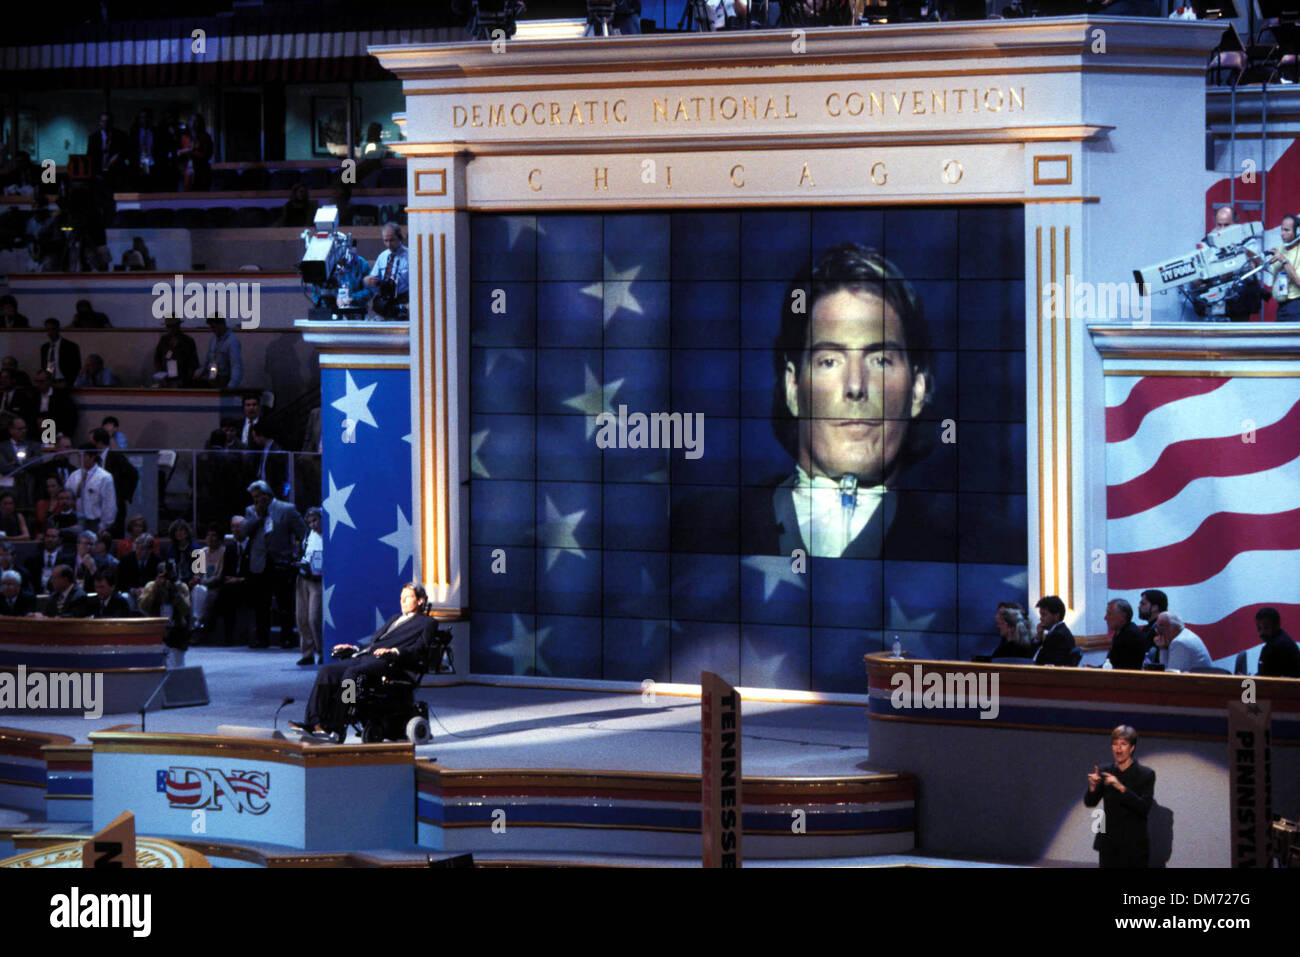 1996 Democratic National Convention